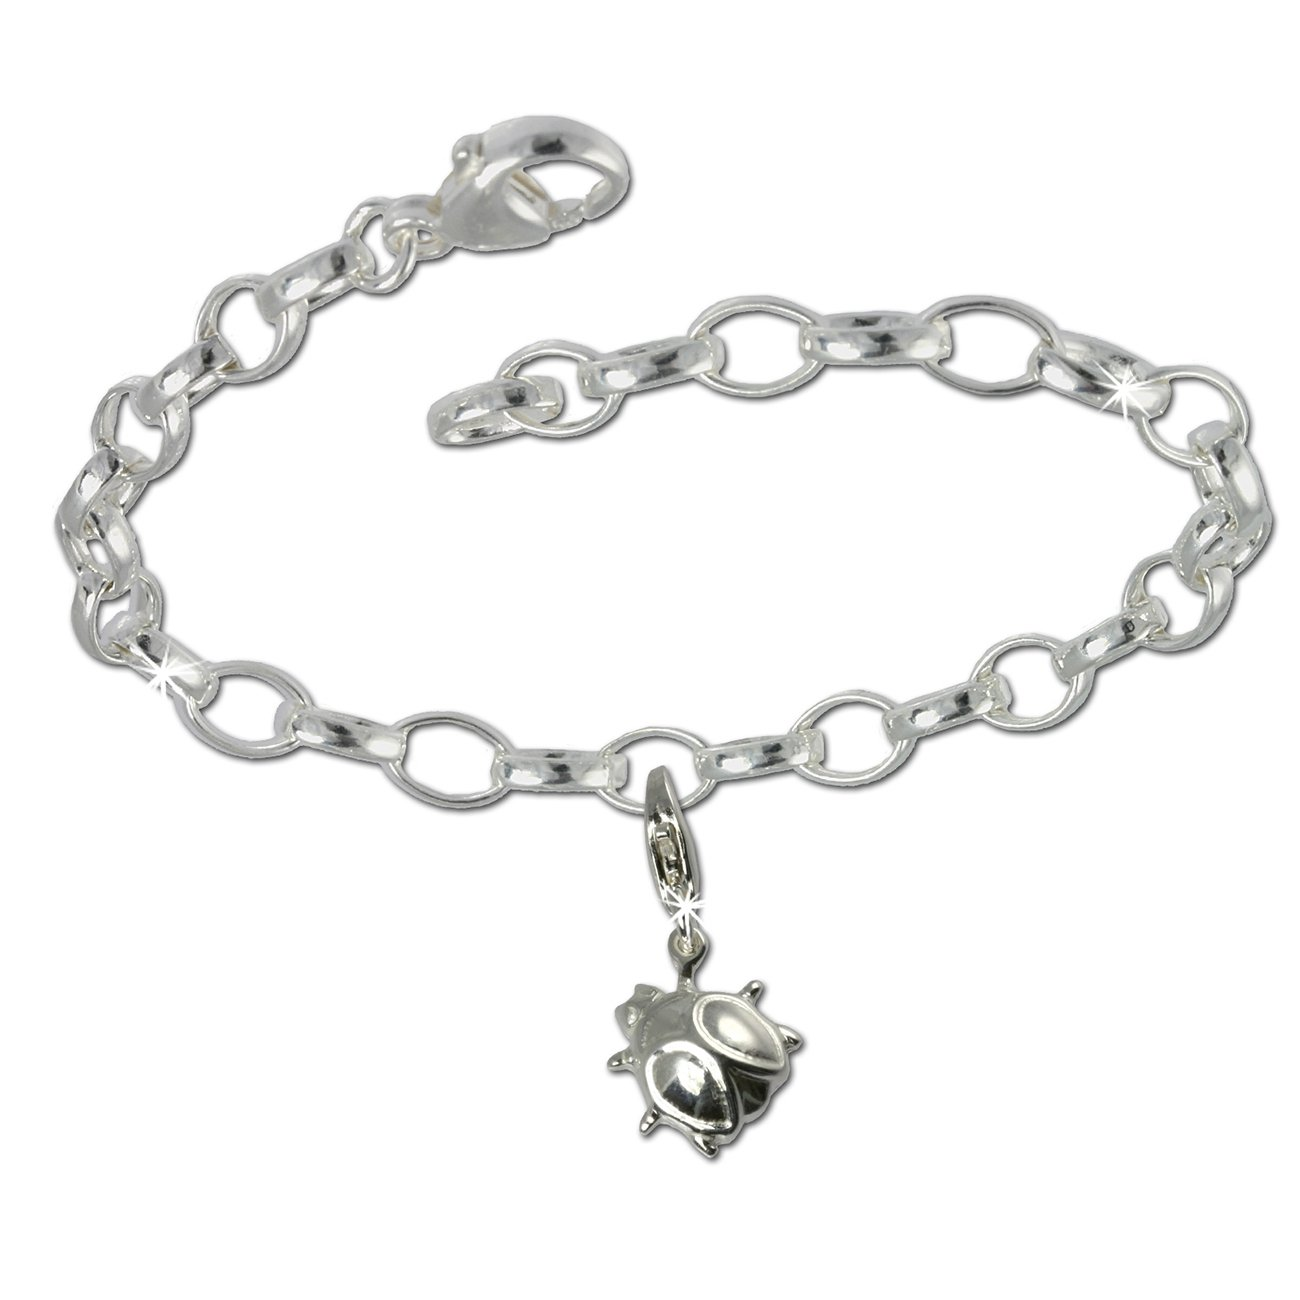 SilberDream Charms Kette Set - Marienkäfer - 925 Sterling Silber Charm Armband - FCA135 Charms Sets